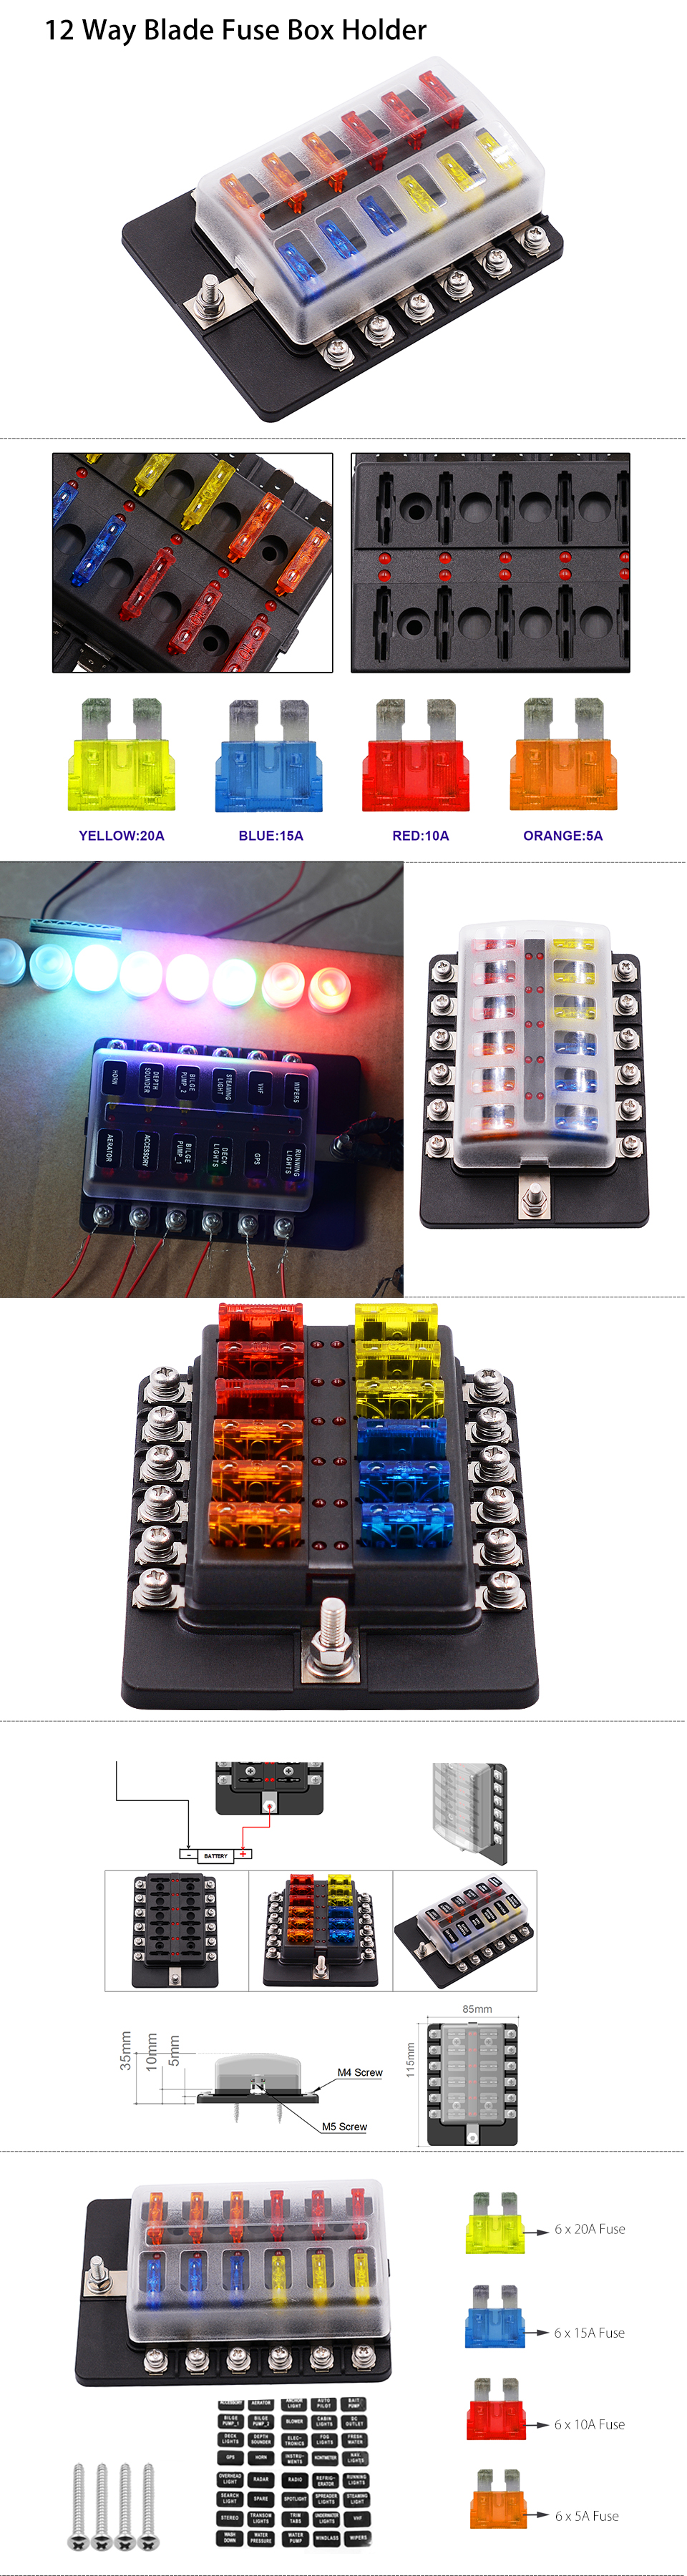 12 Way Car Auto Boat Bus Utv Blade Fuse Box Block Cover 12v With Led For Cars This Is A That Common Supplying Power Circuits At The Same Time Suitable Old Motor Off Road Ship And